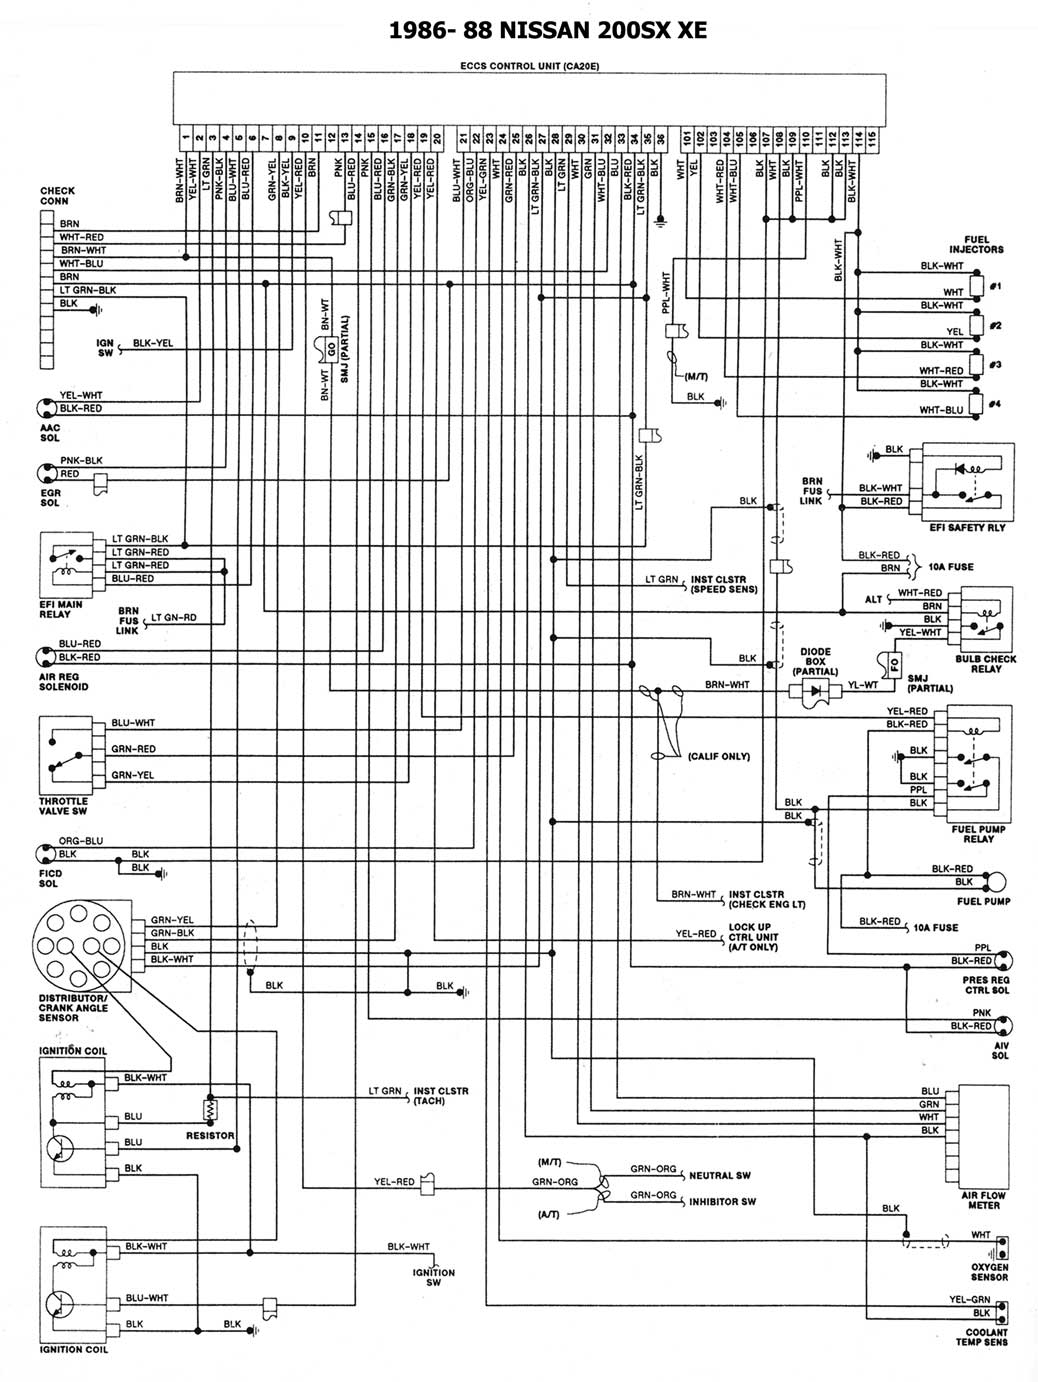 88 Chevy Caprice 4 3 Wiring Diagram 1988